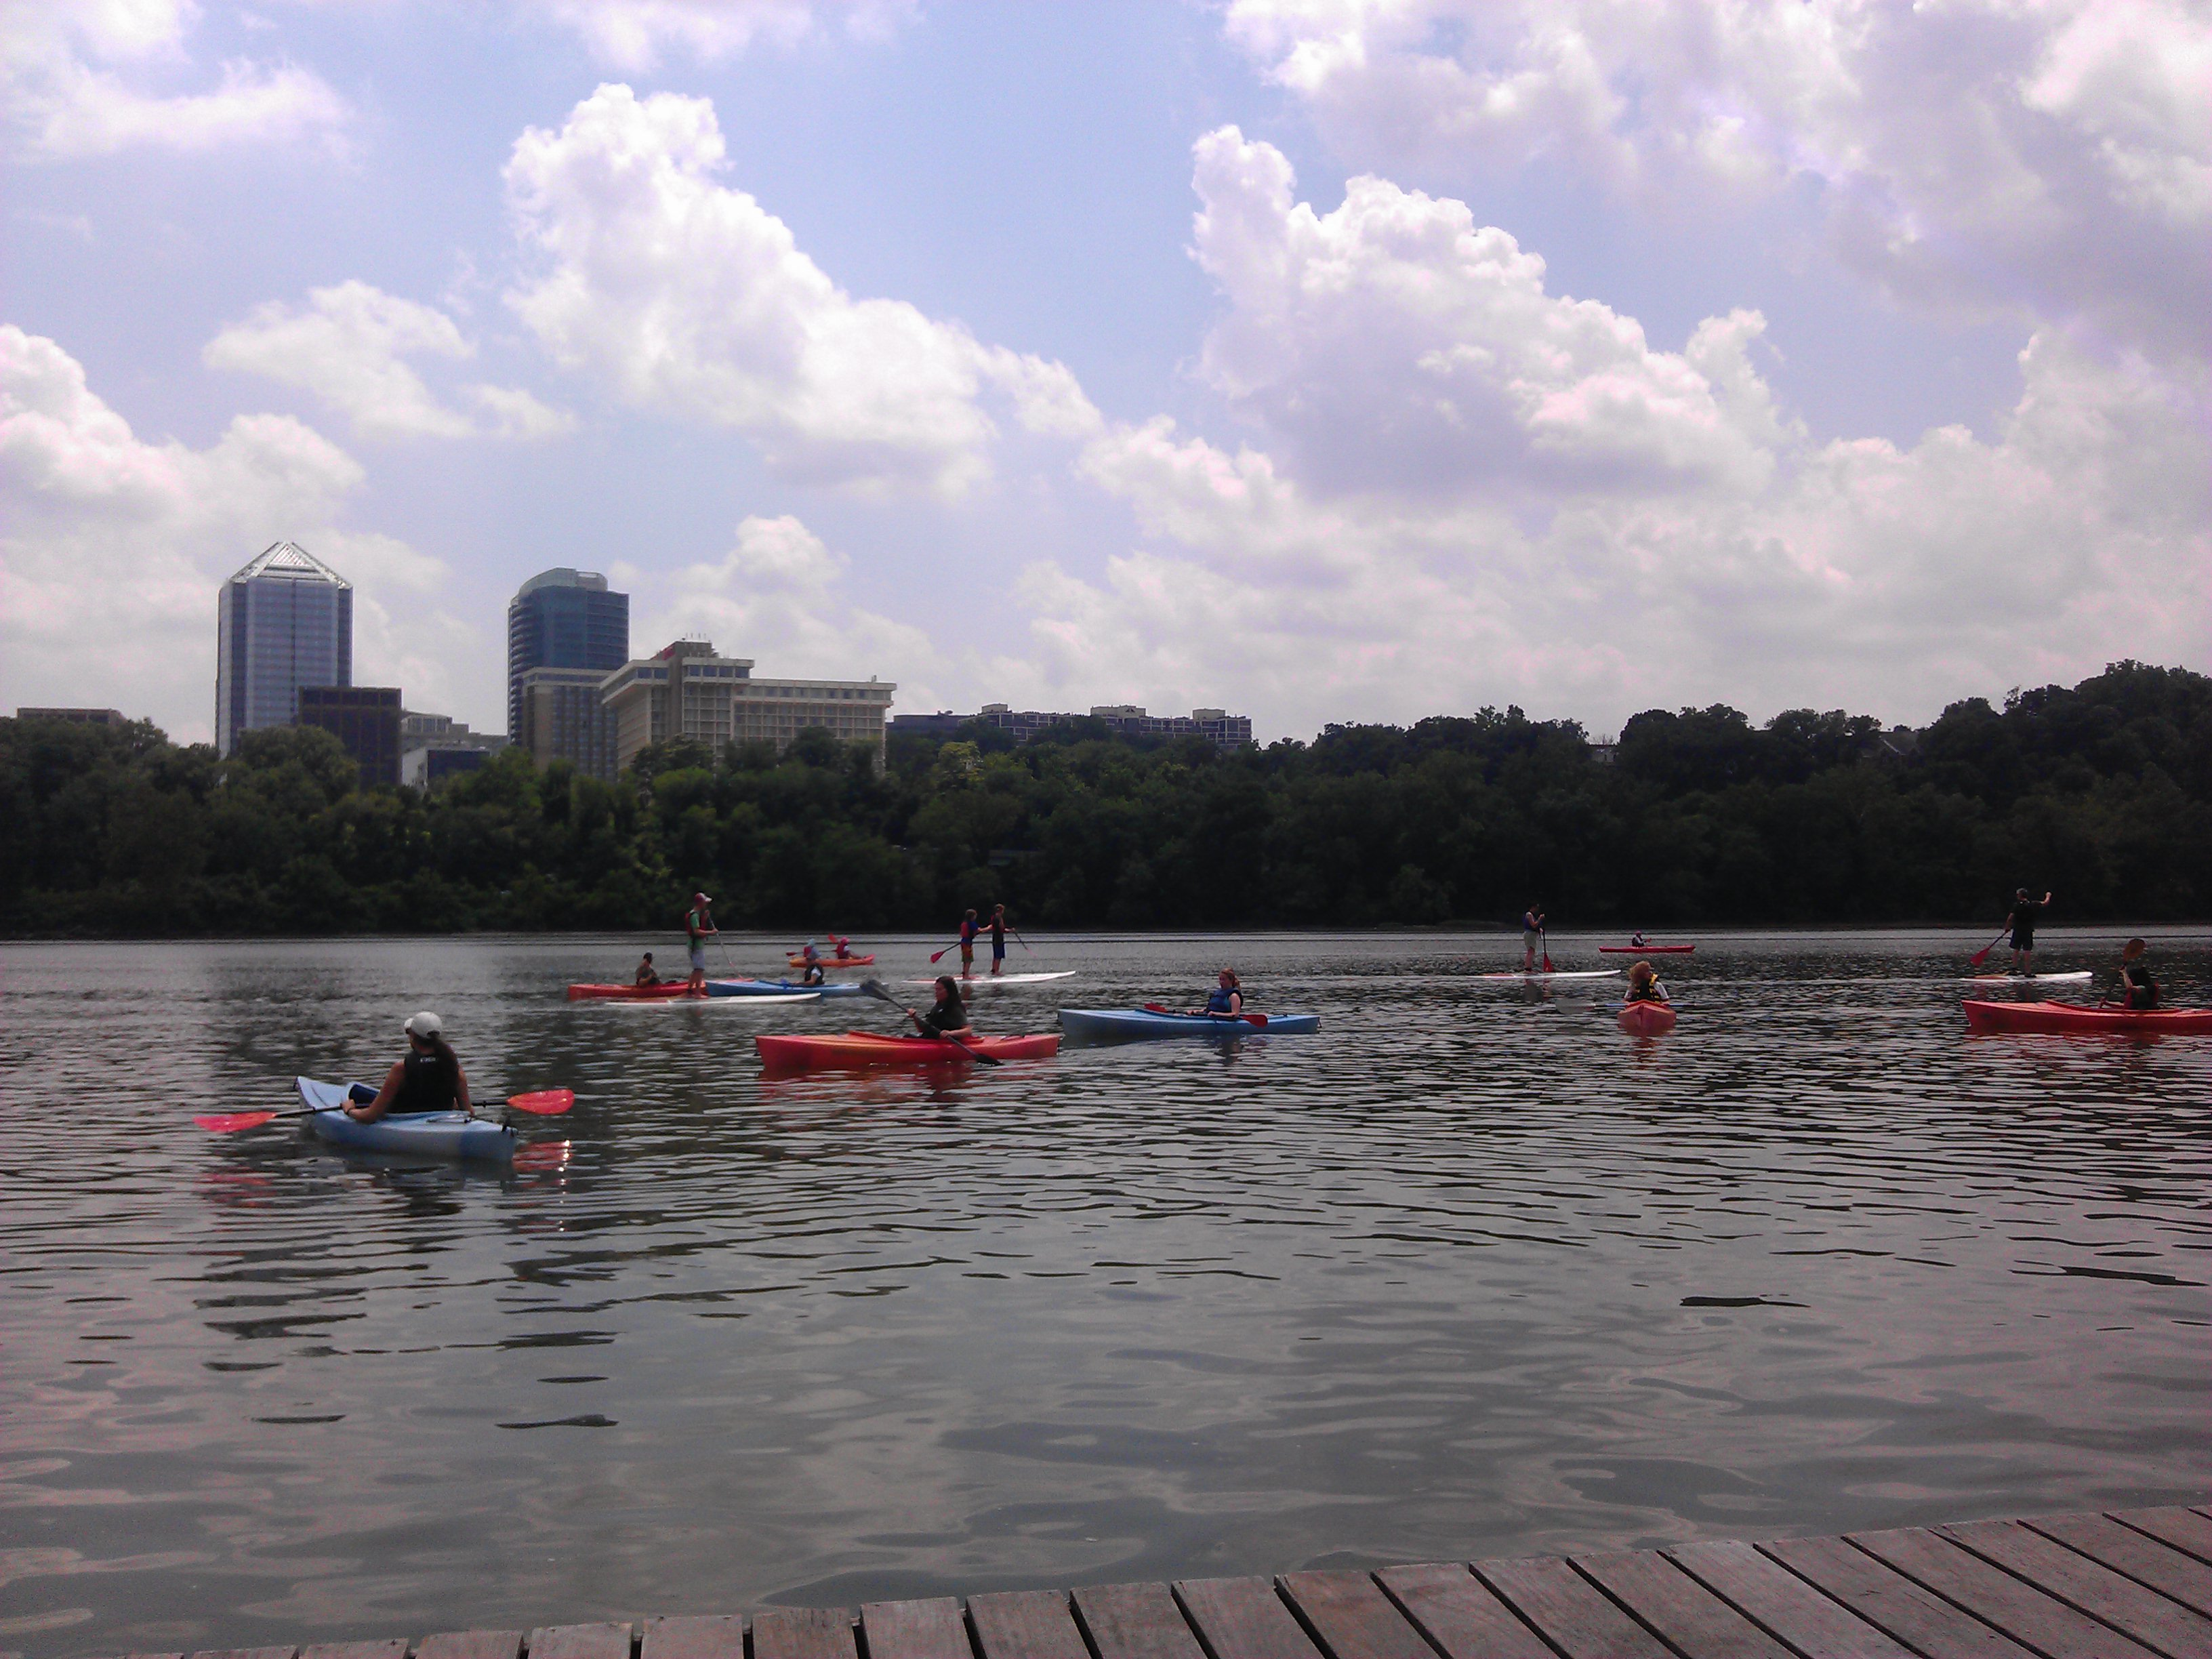 Islanders hit the Potomac for Fun Day 2014 (we